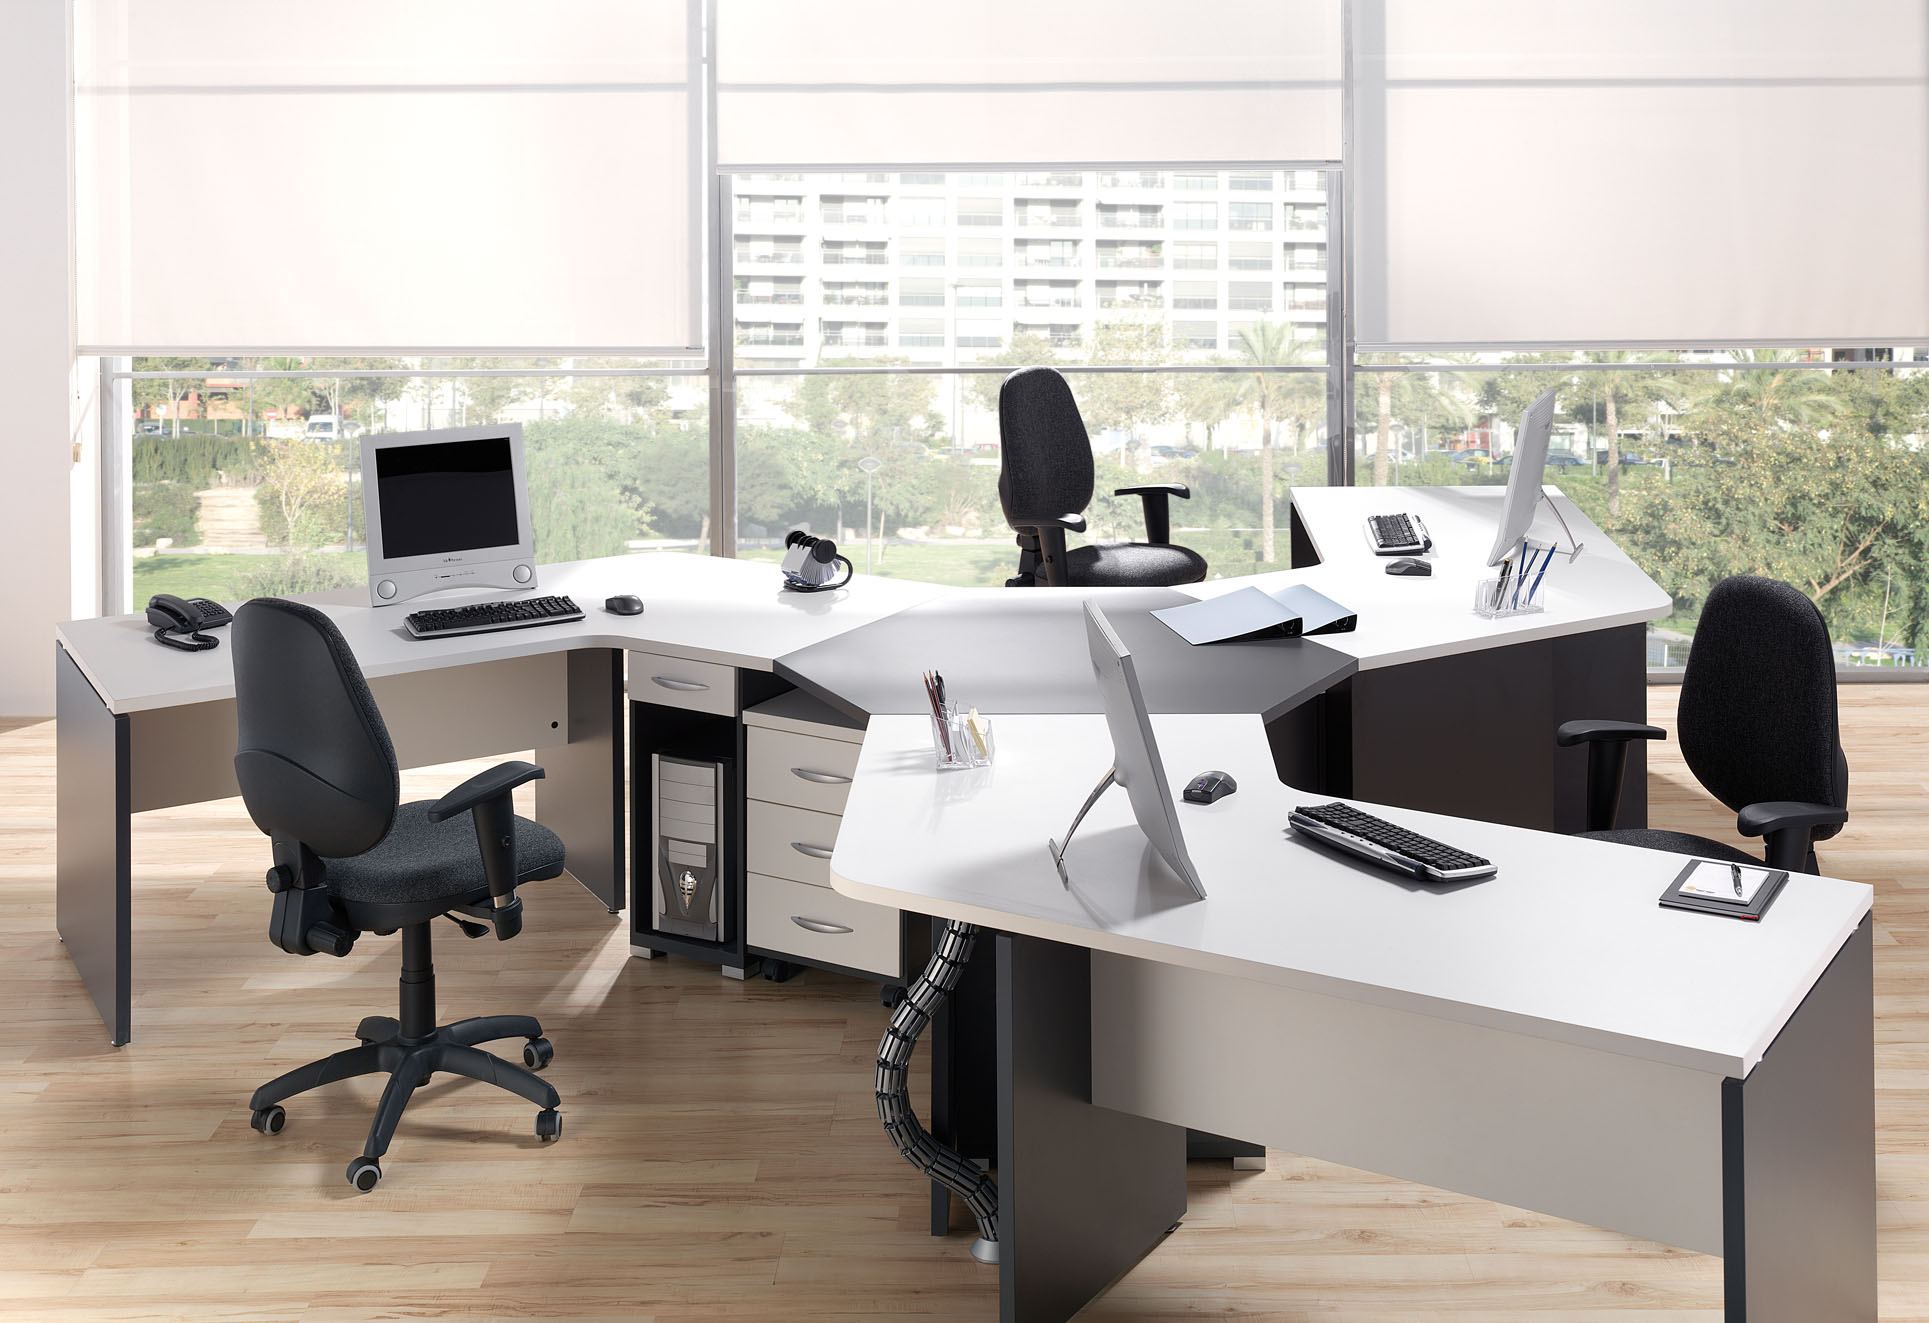 Muebles orts noticias for Oficinas de apple